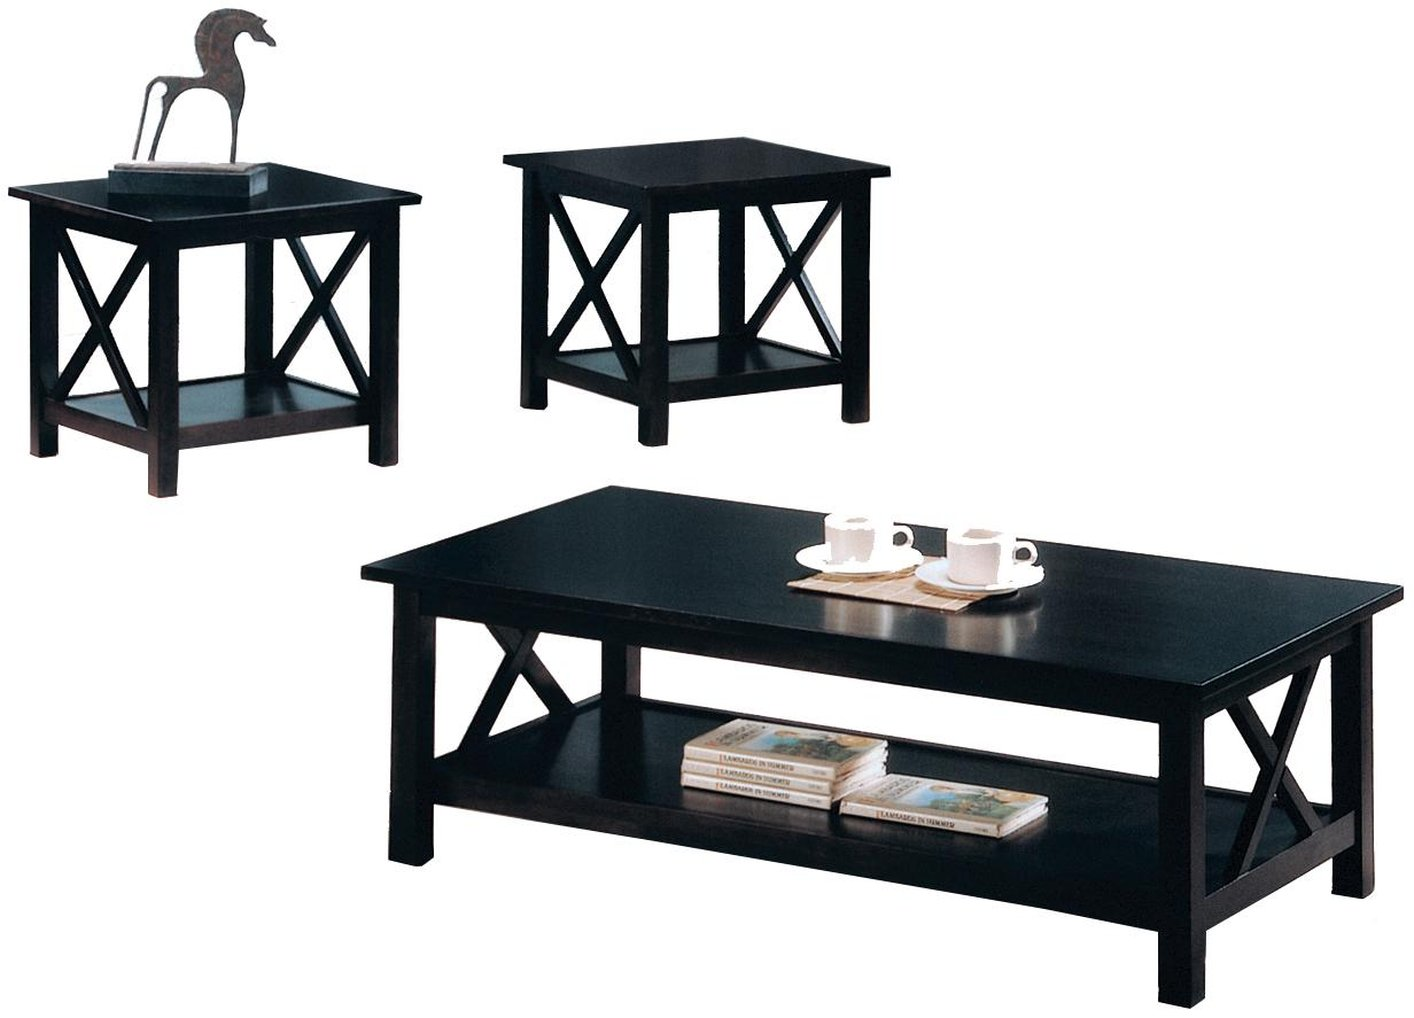 black wood coffee table set steal sofa furniture los and end tables angeles kmart pool homesense easter opening times wicker basket pipe dining room oriental lacquer cabinet laura